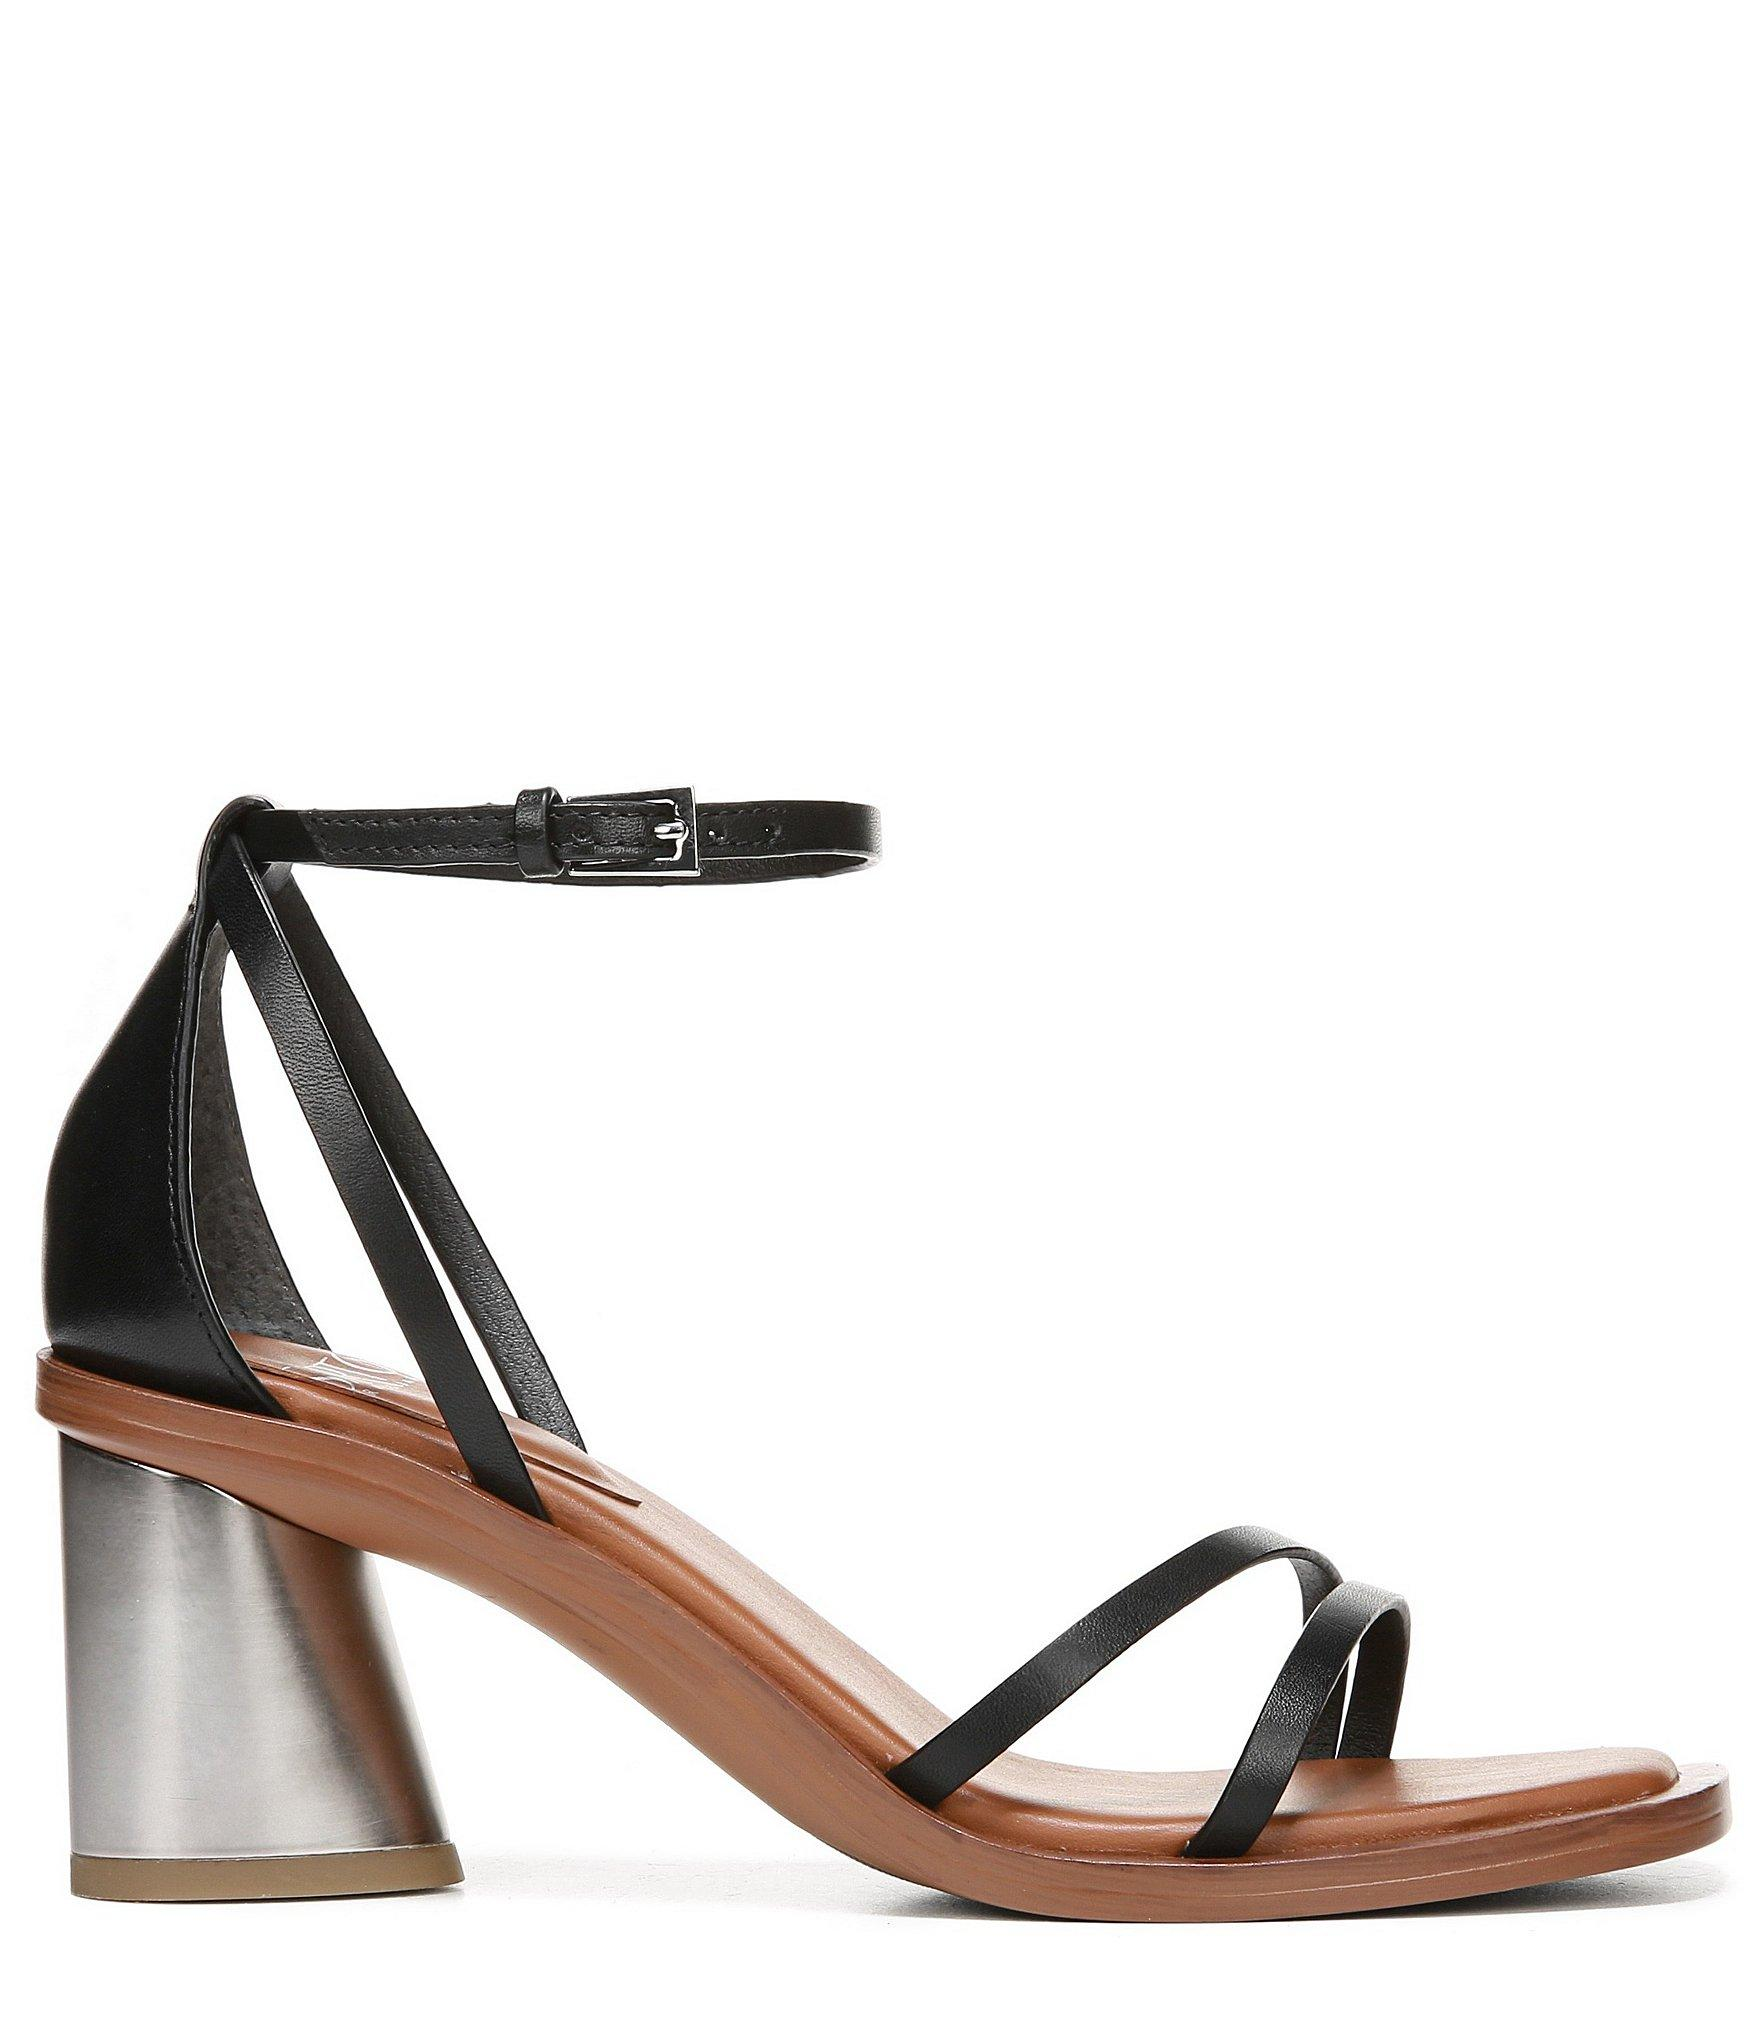 cafde29a2b8 Franco Sarto - Black Sarto By Ronelle Leather Block Heel Sandals - Lyst.  View fullscreen